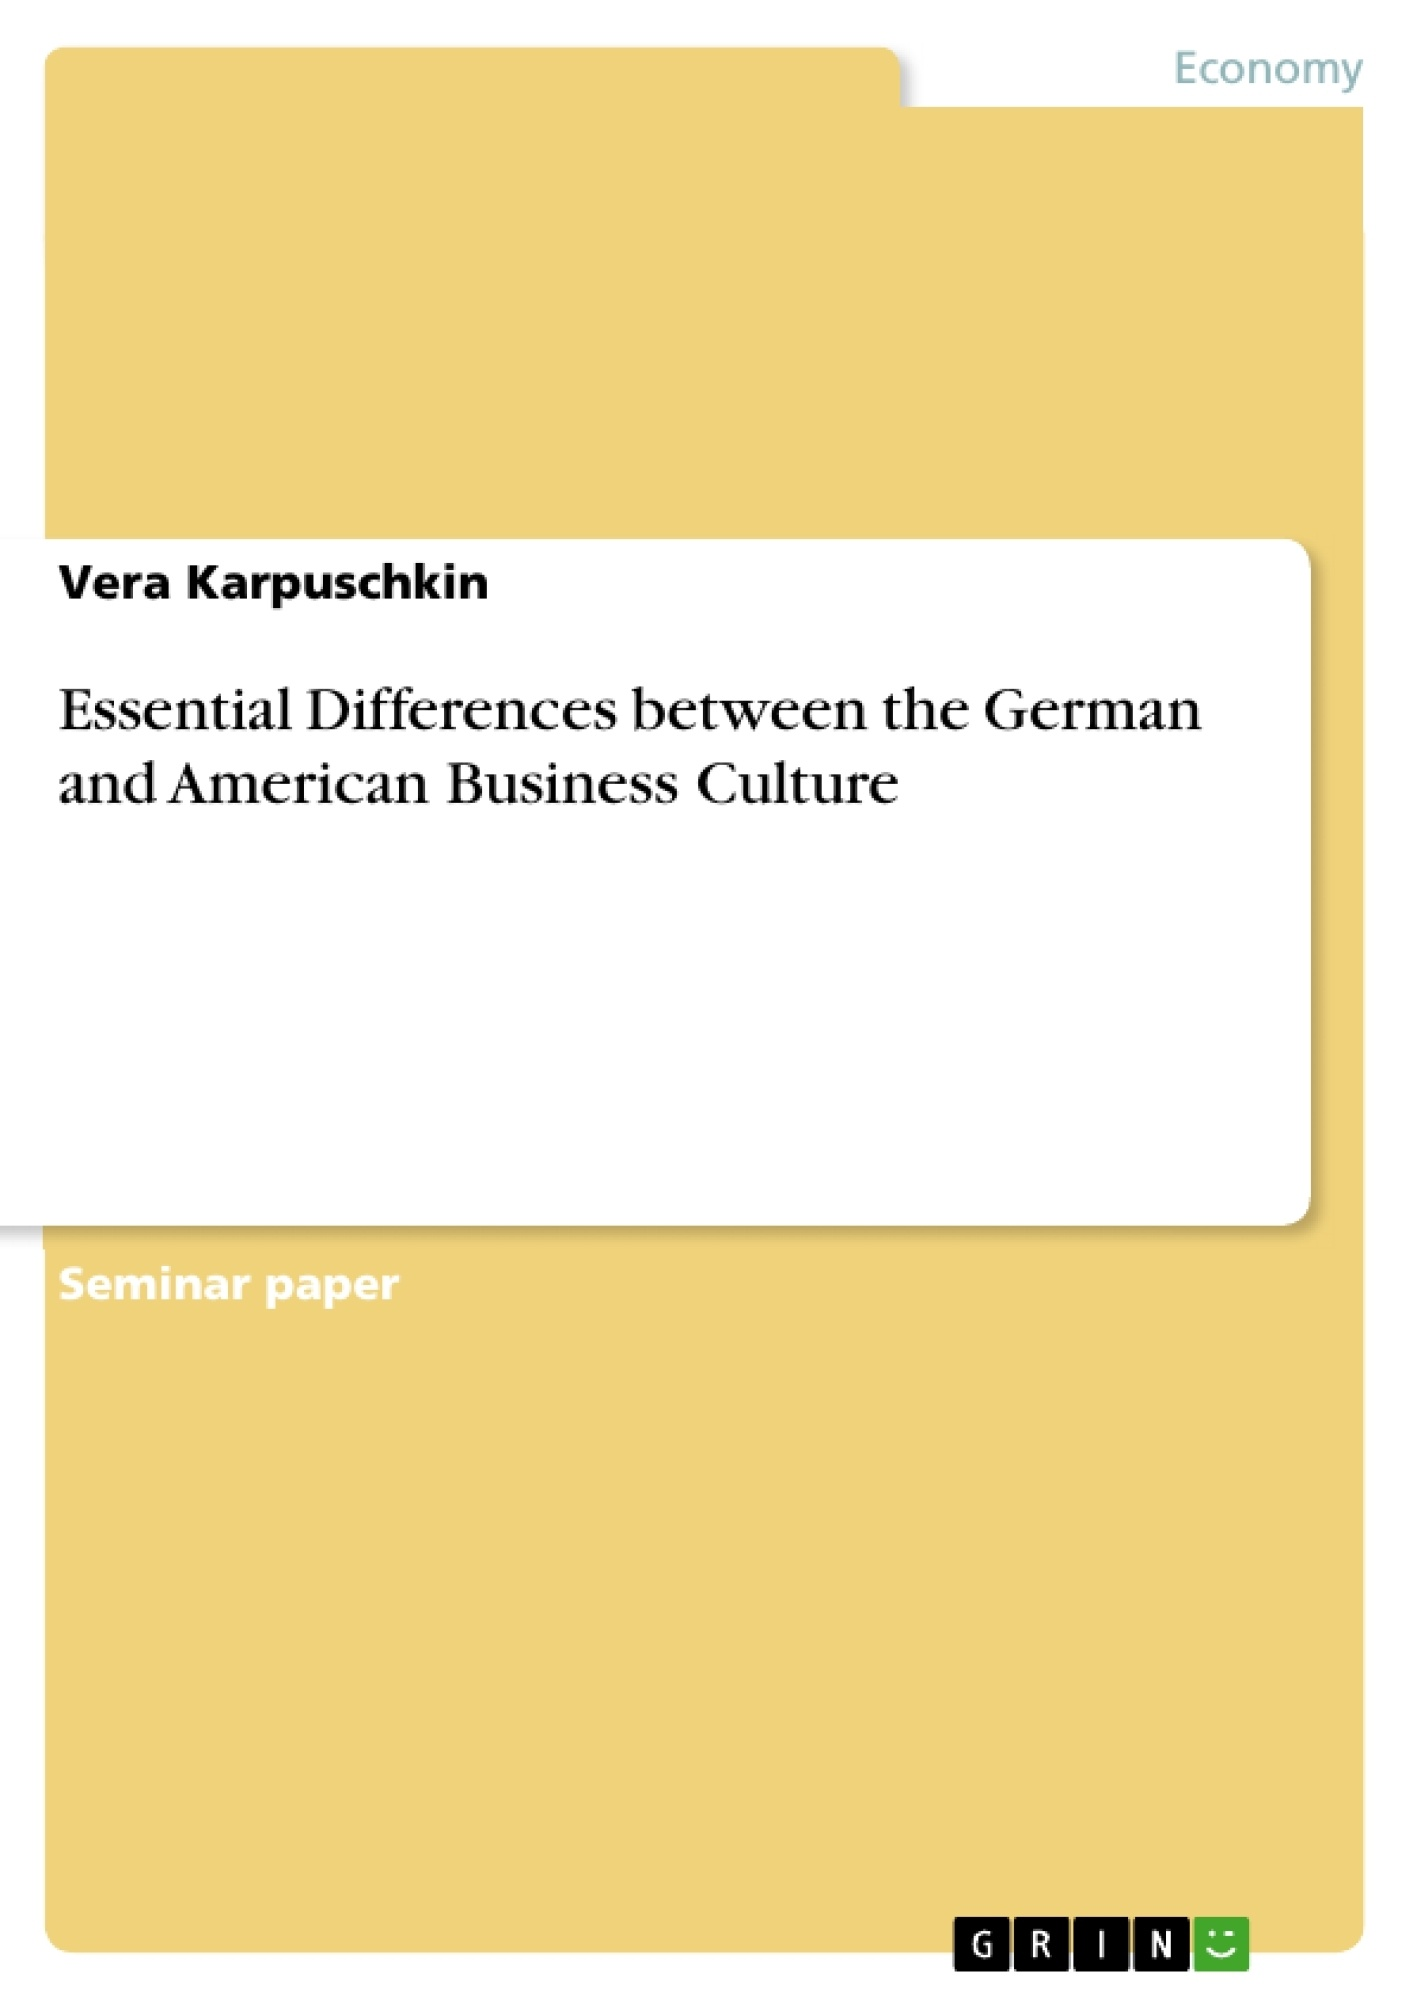 Title: Essential Differences between the German and American Business Culture